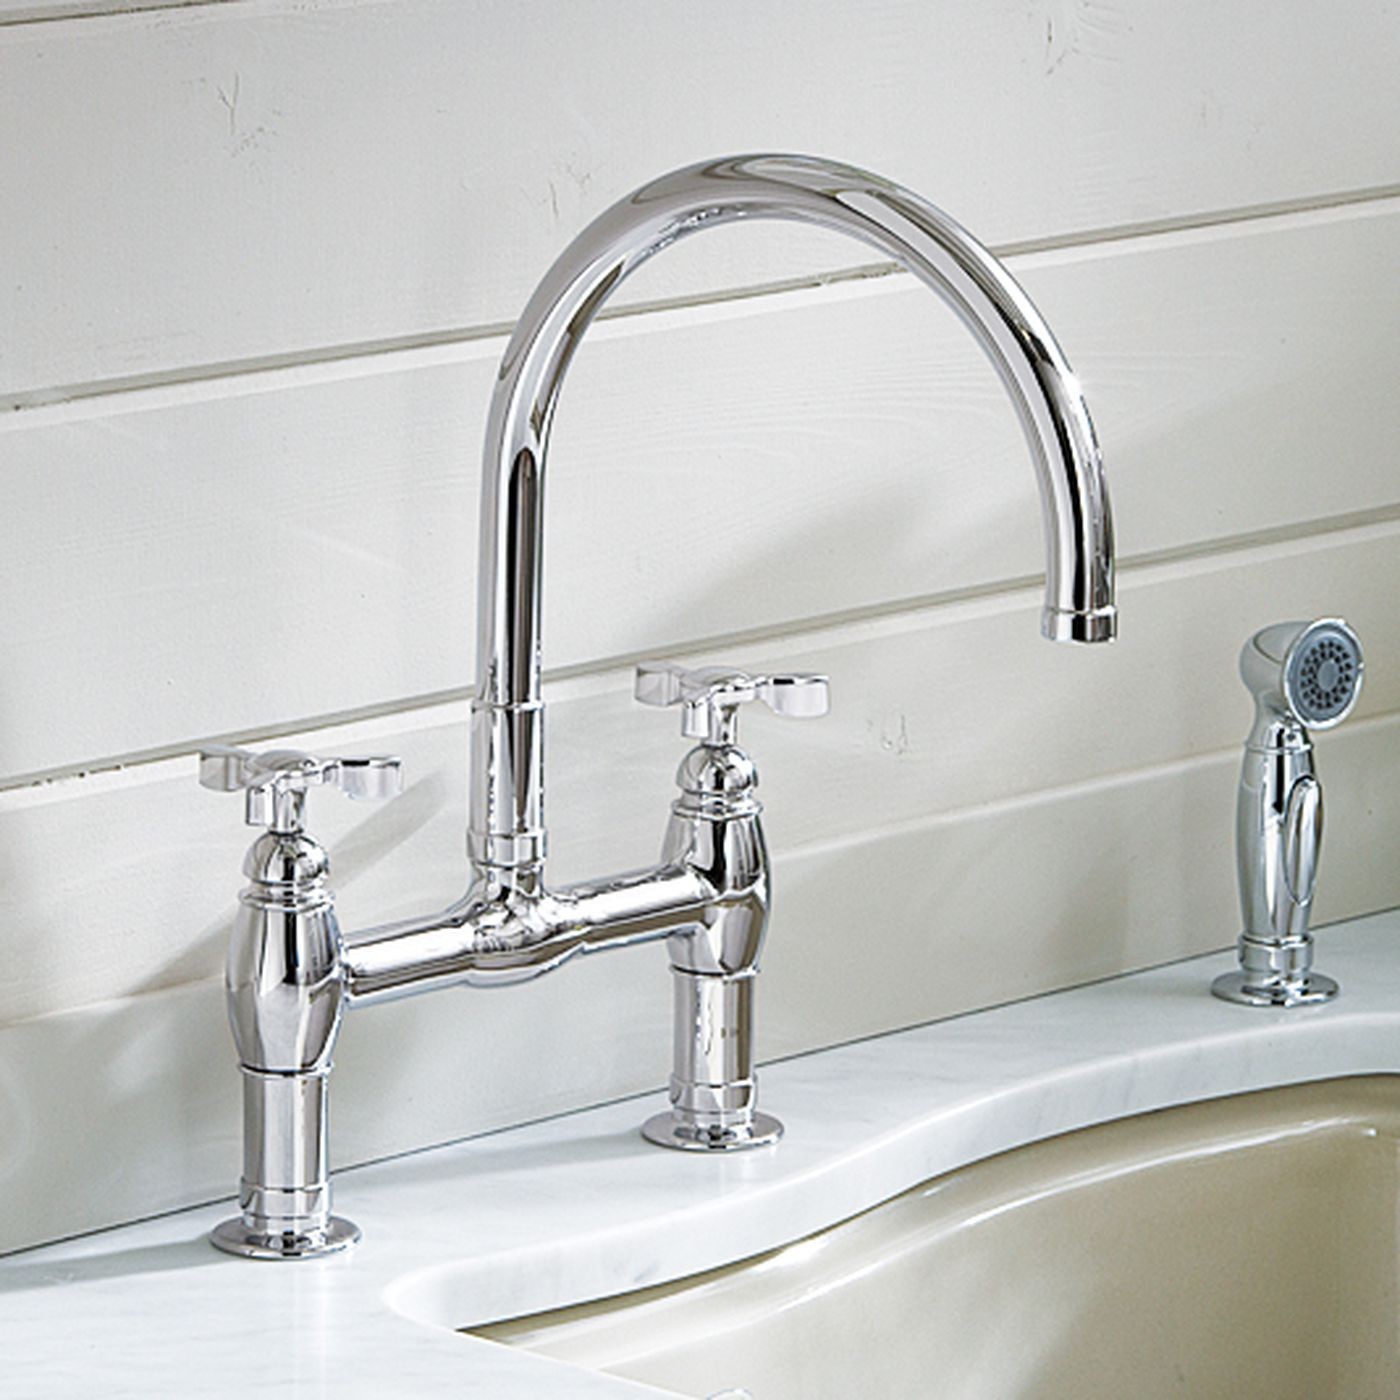 How To Fix A Leaky Faucet Step By Step This Old House